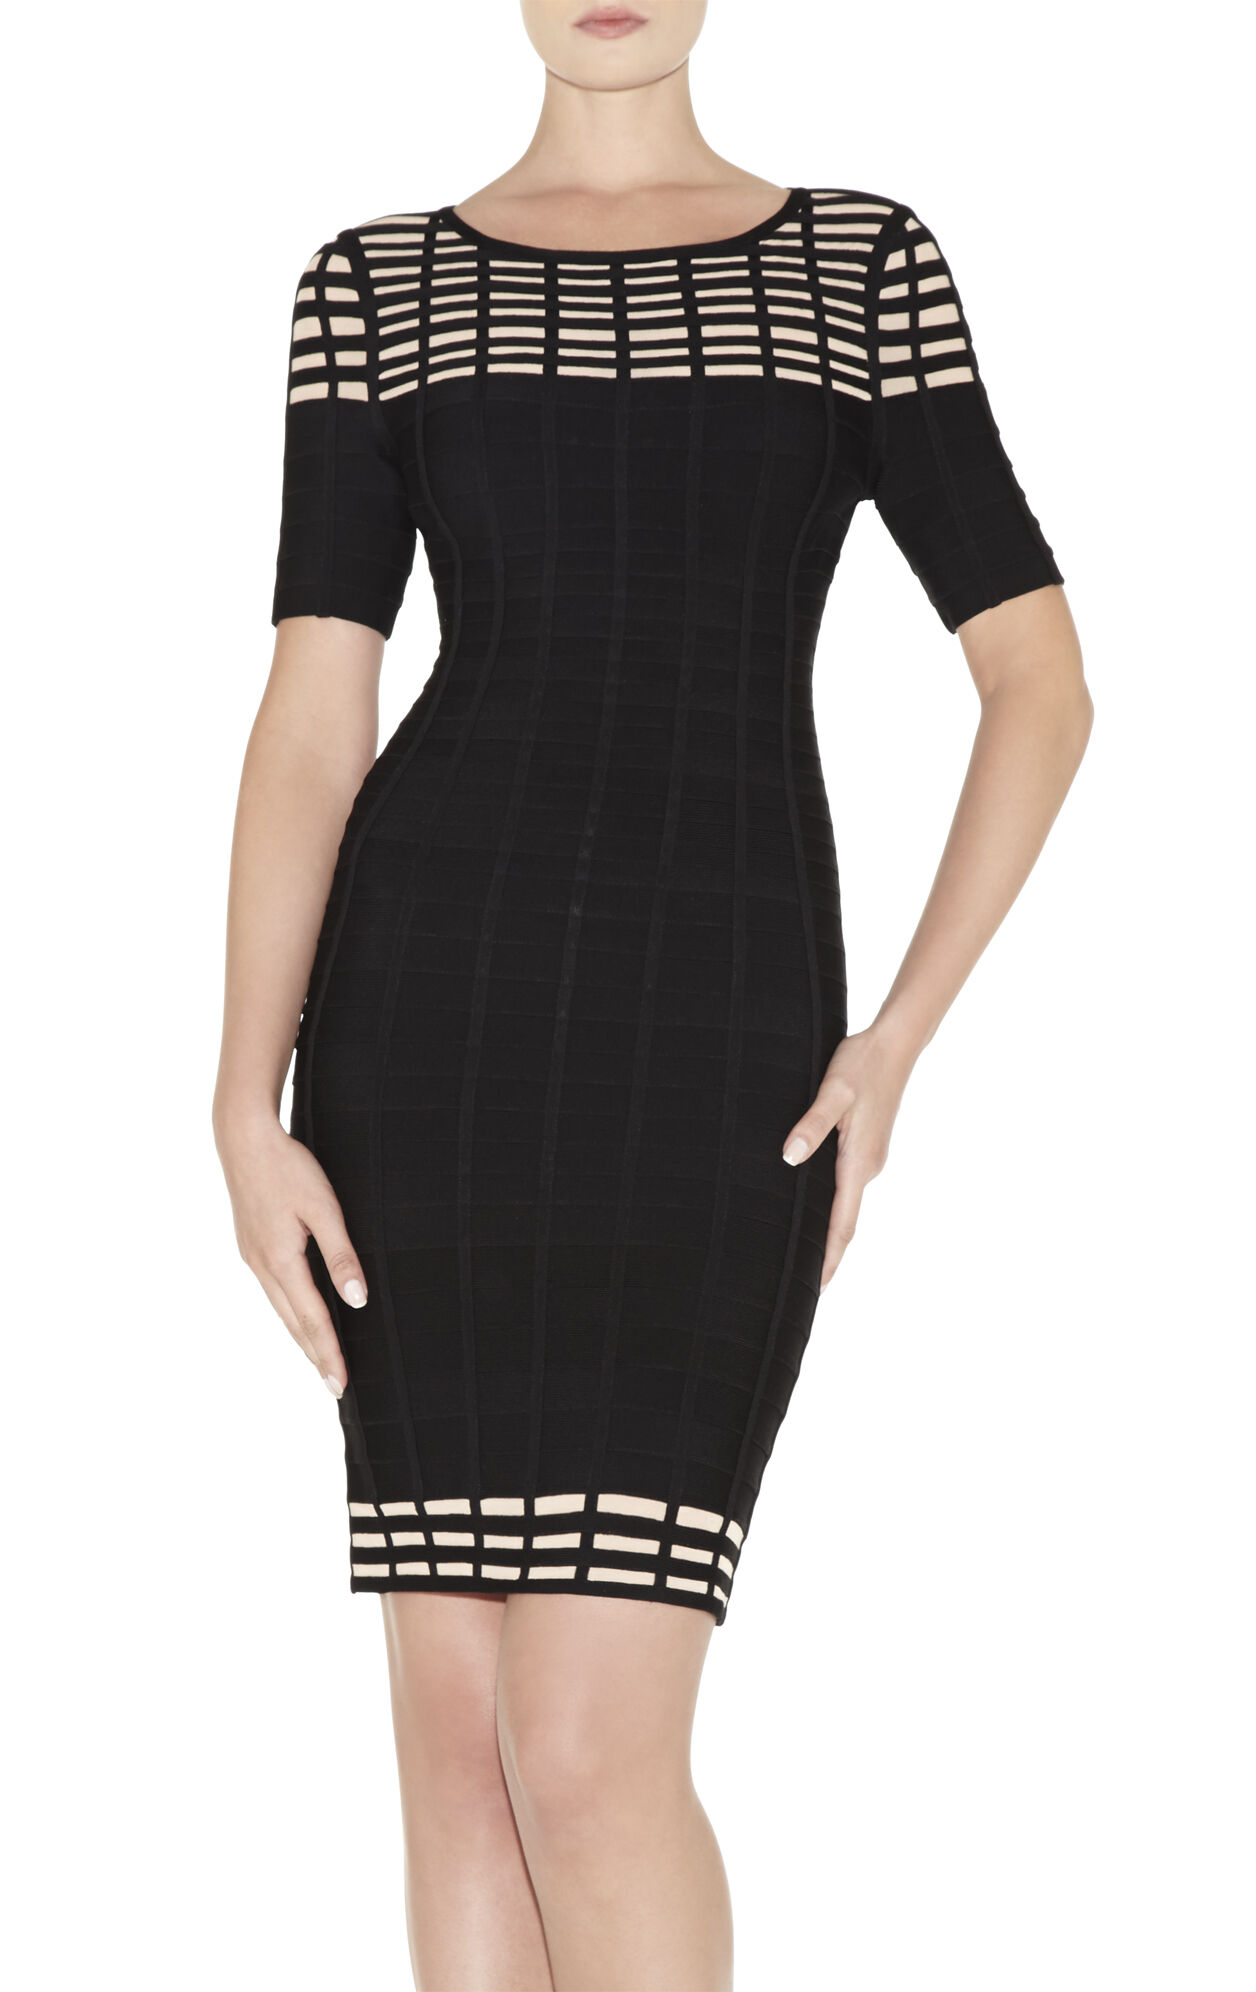 Gisele Grid Bandage Dress